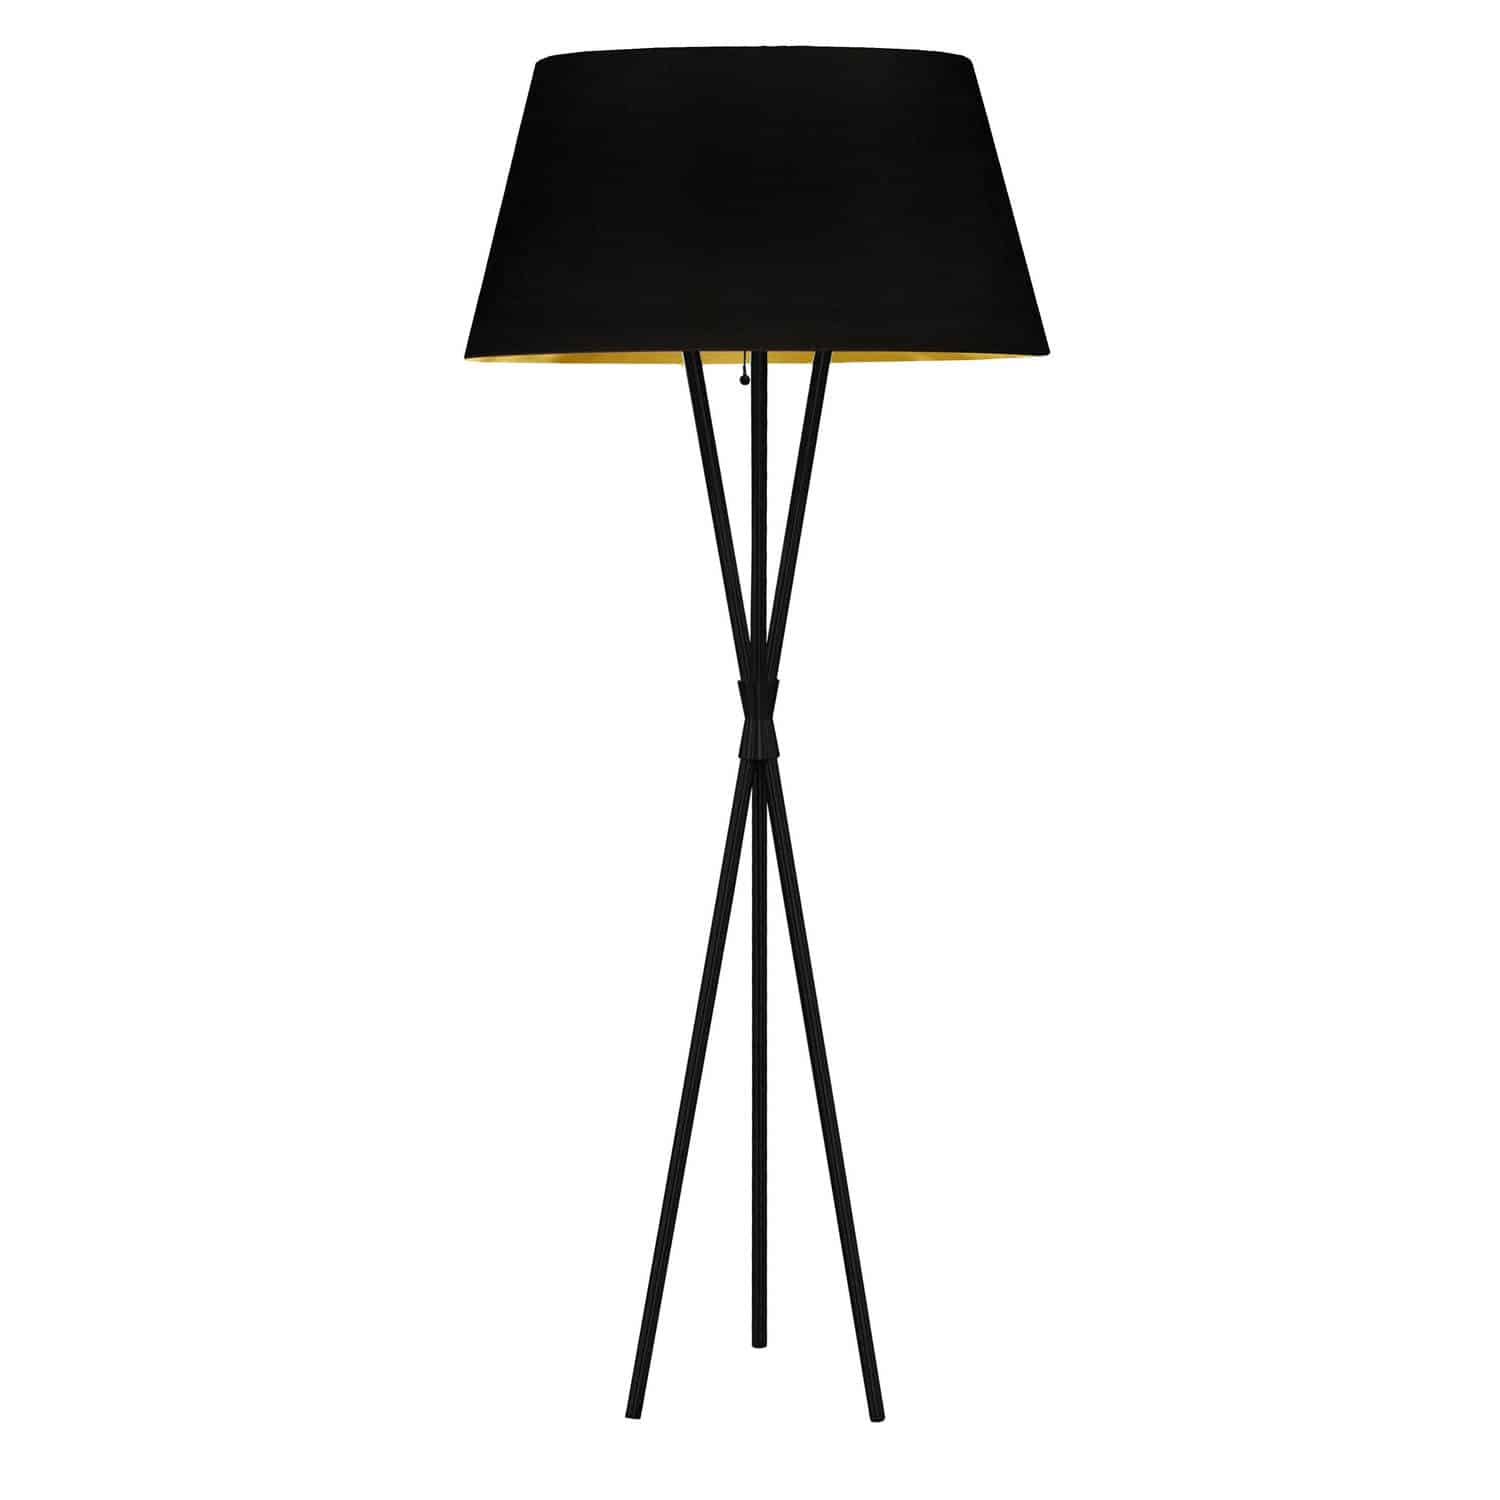 1 Light 3 Legged Matte Black Floor Lamp, with Black-Gold Shade